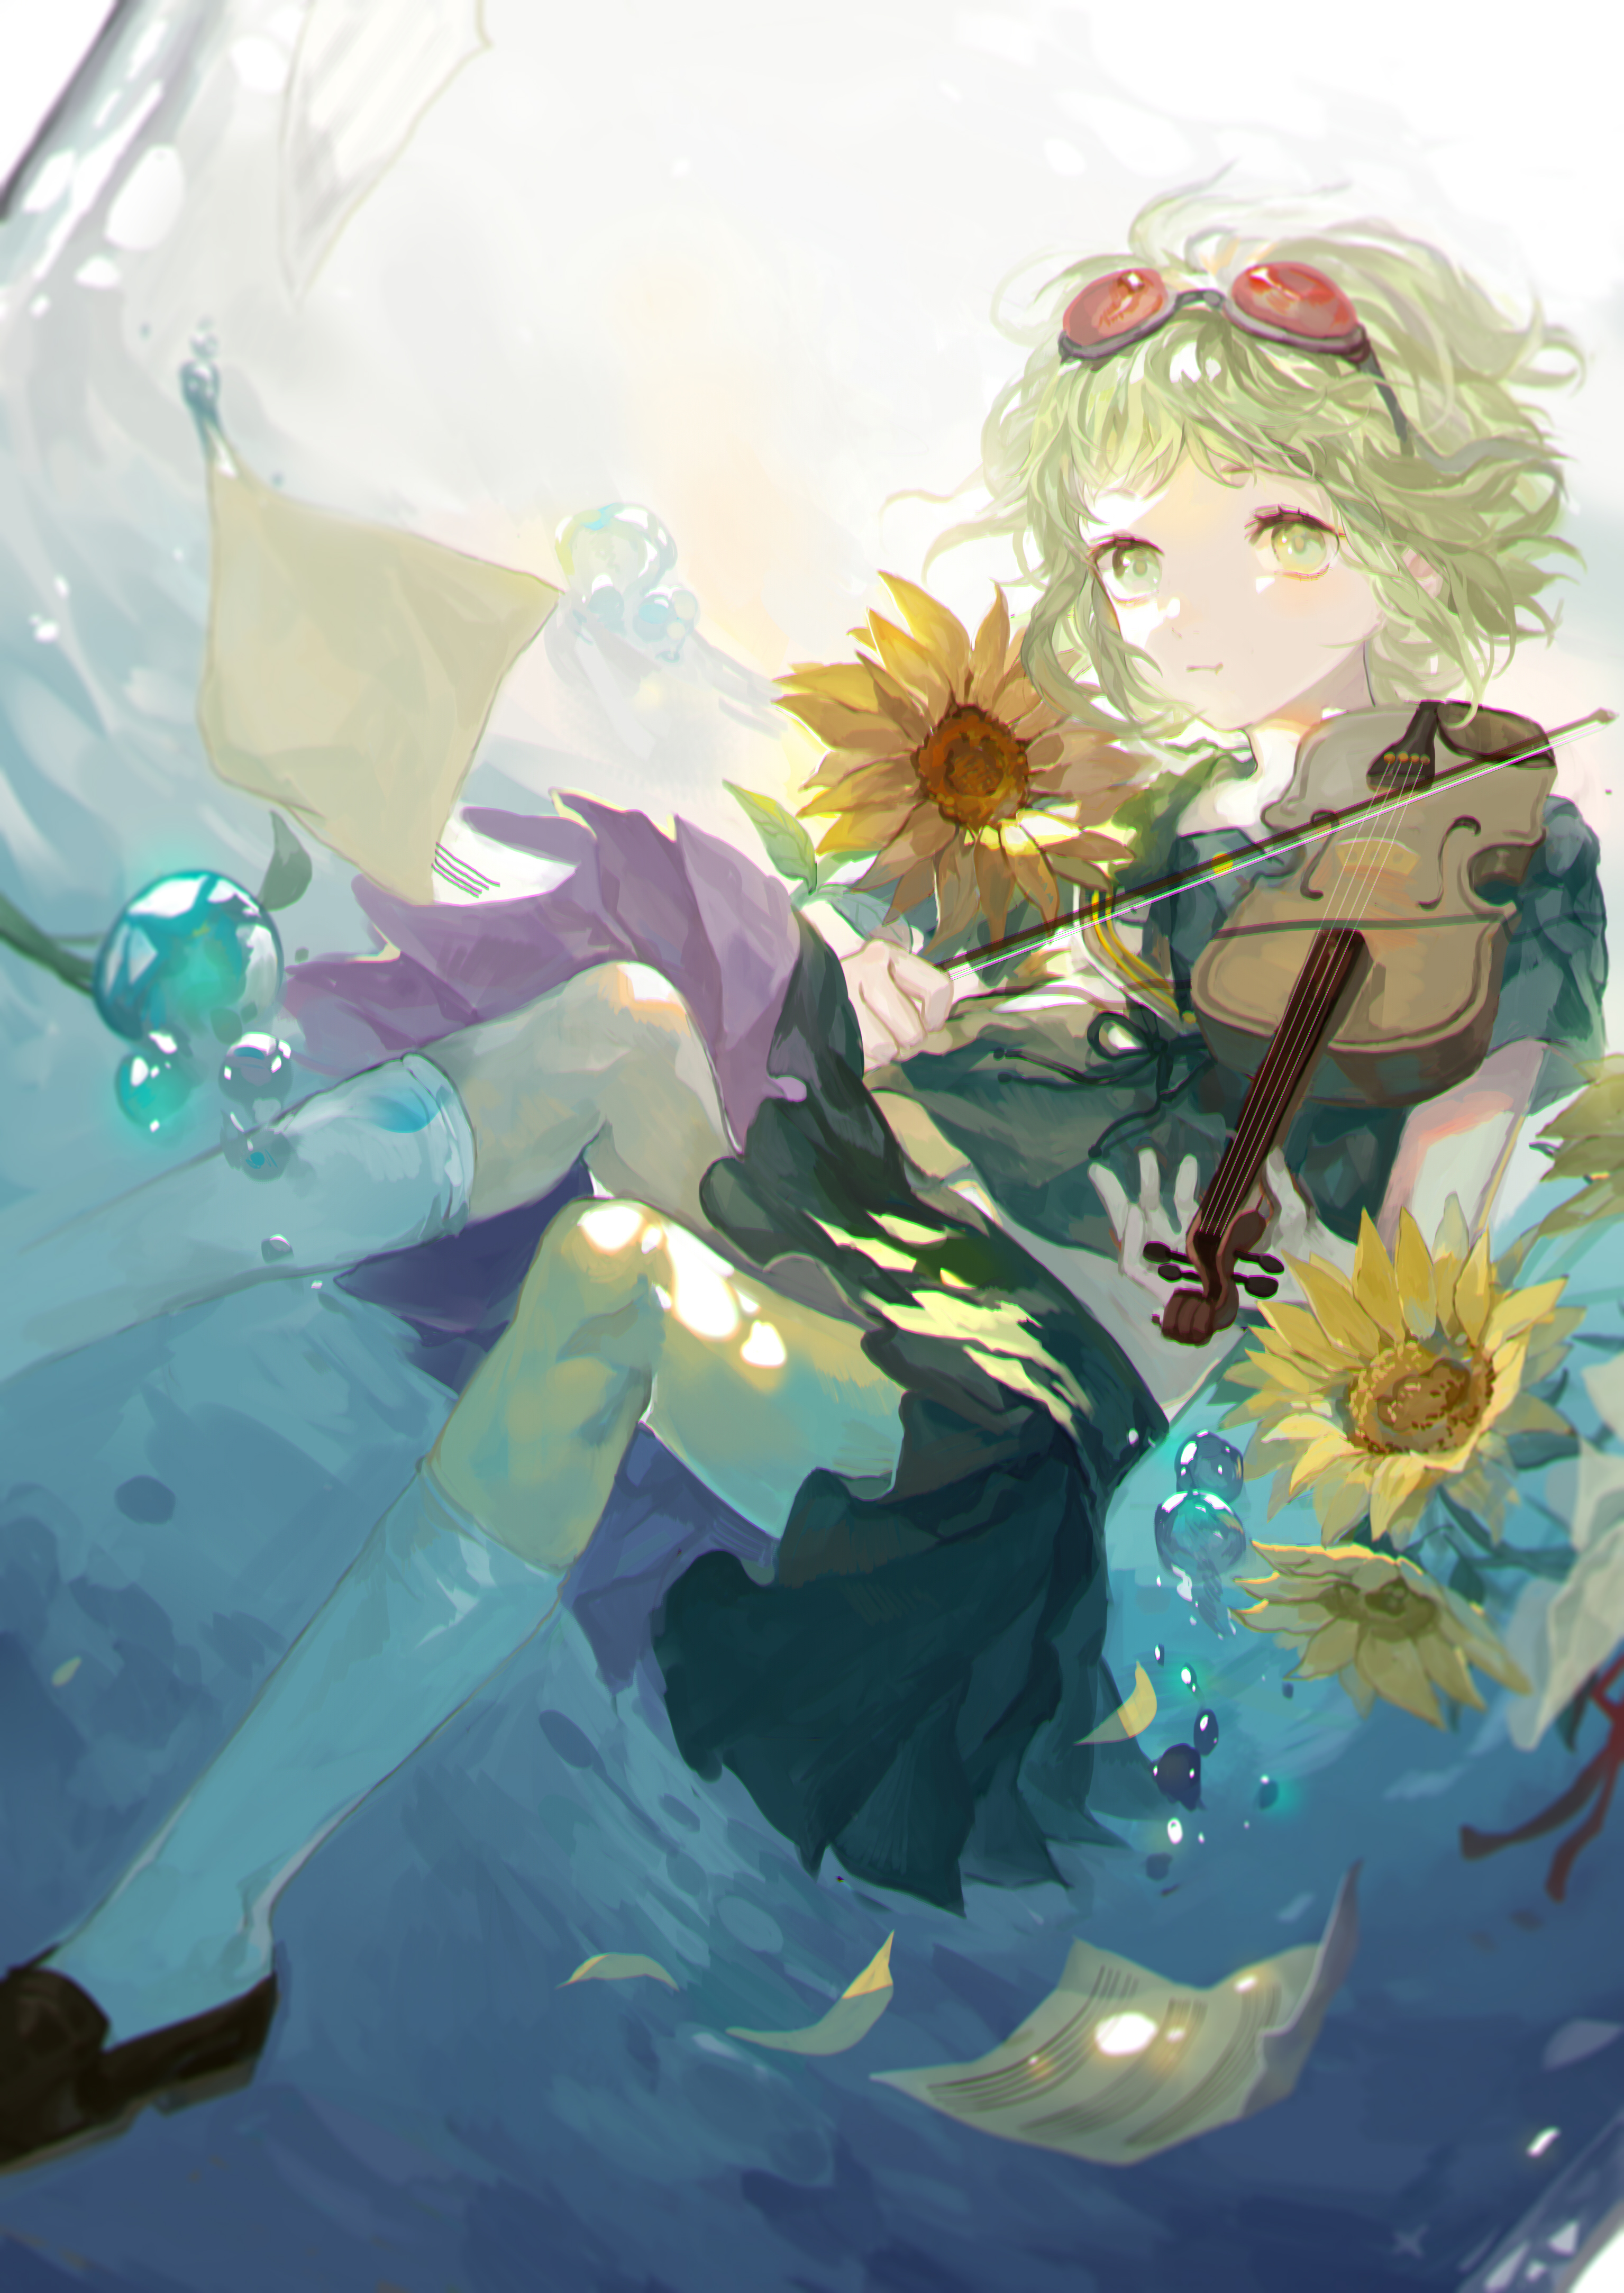 Tags Anime Pixiv Id 4766904 VOCALOID GUMI Sheet Music Holding